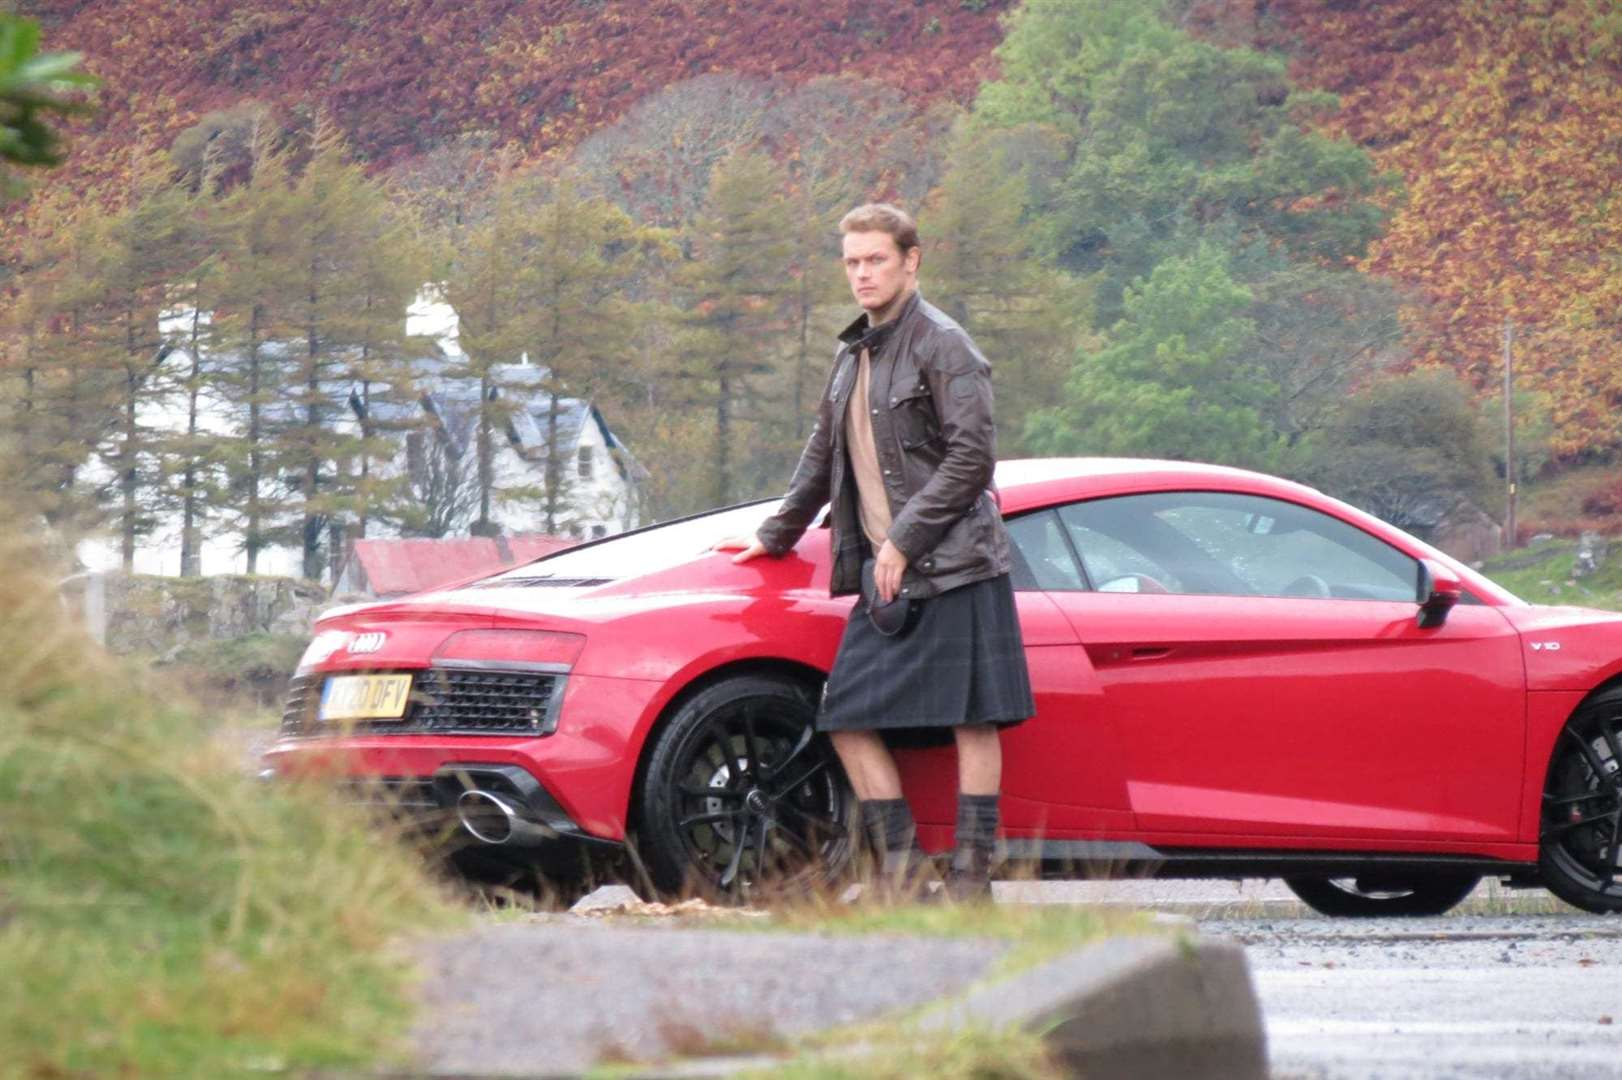 Mr Heughan looked as though he wa enjoying the Highlands.